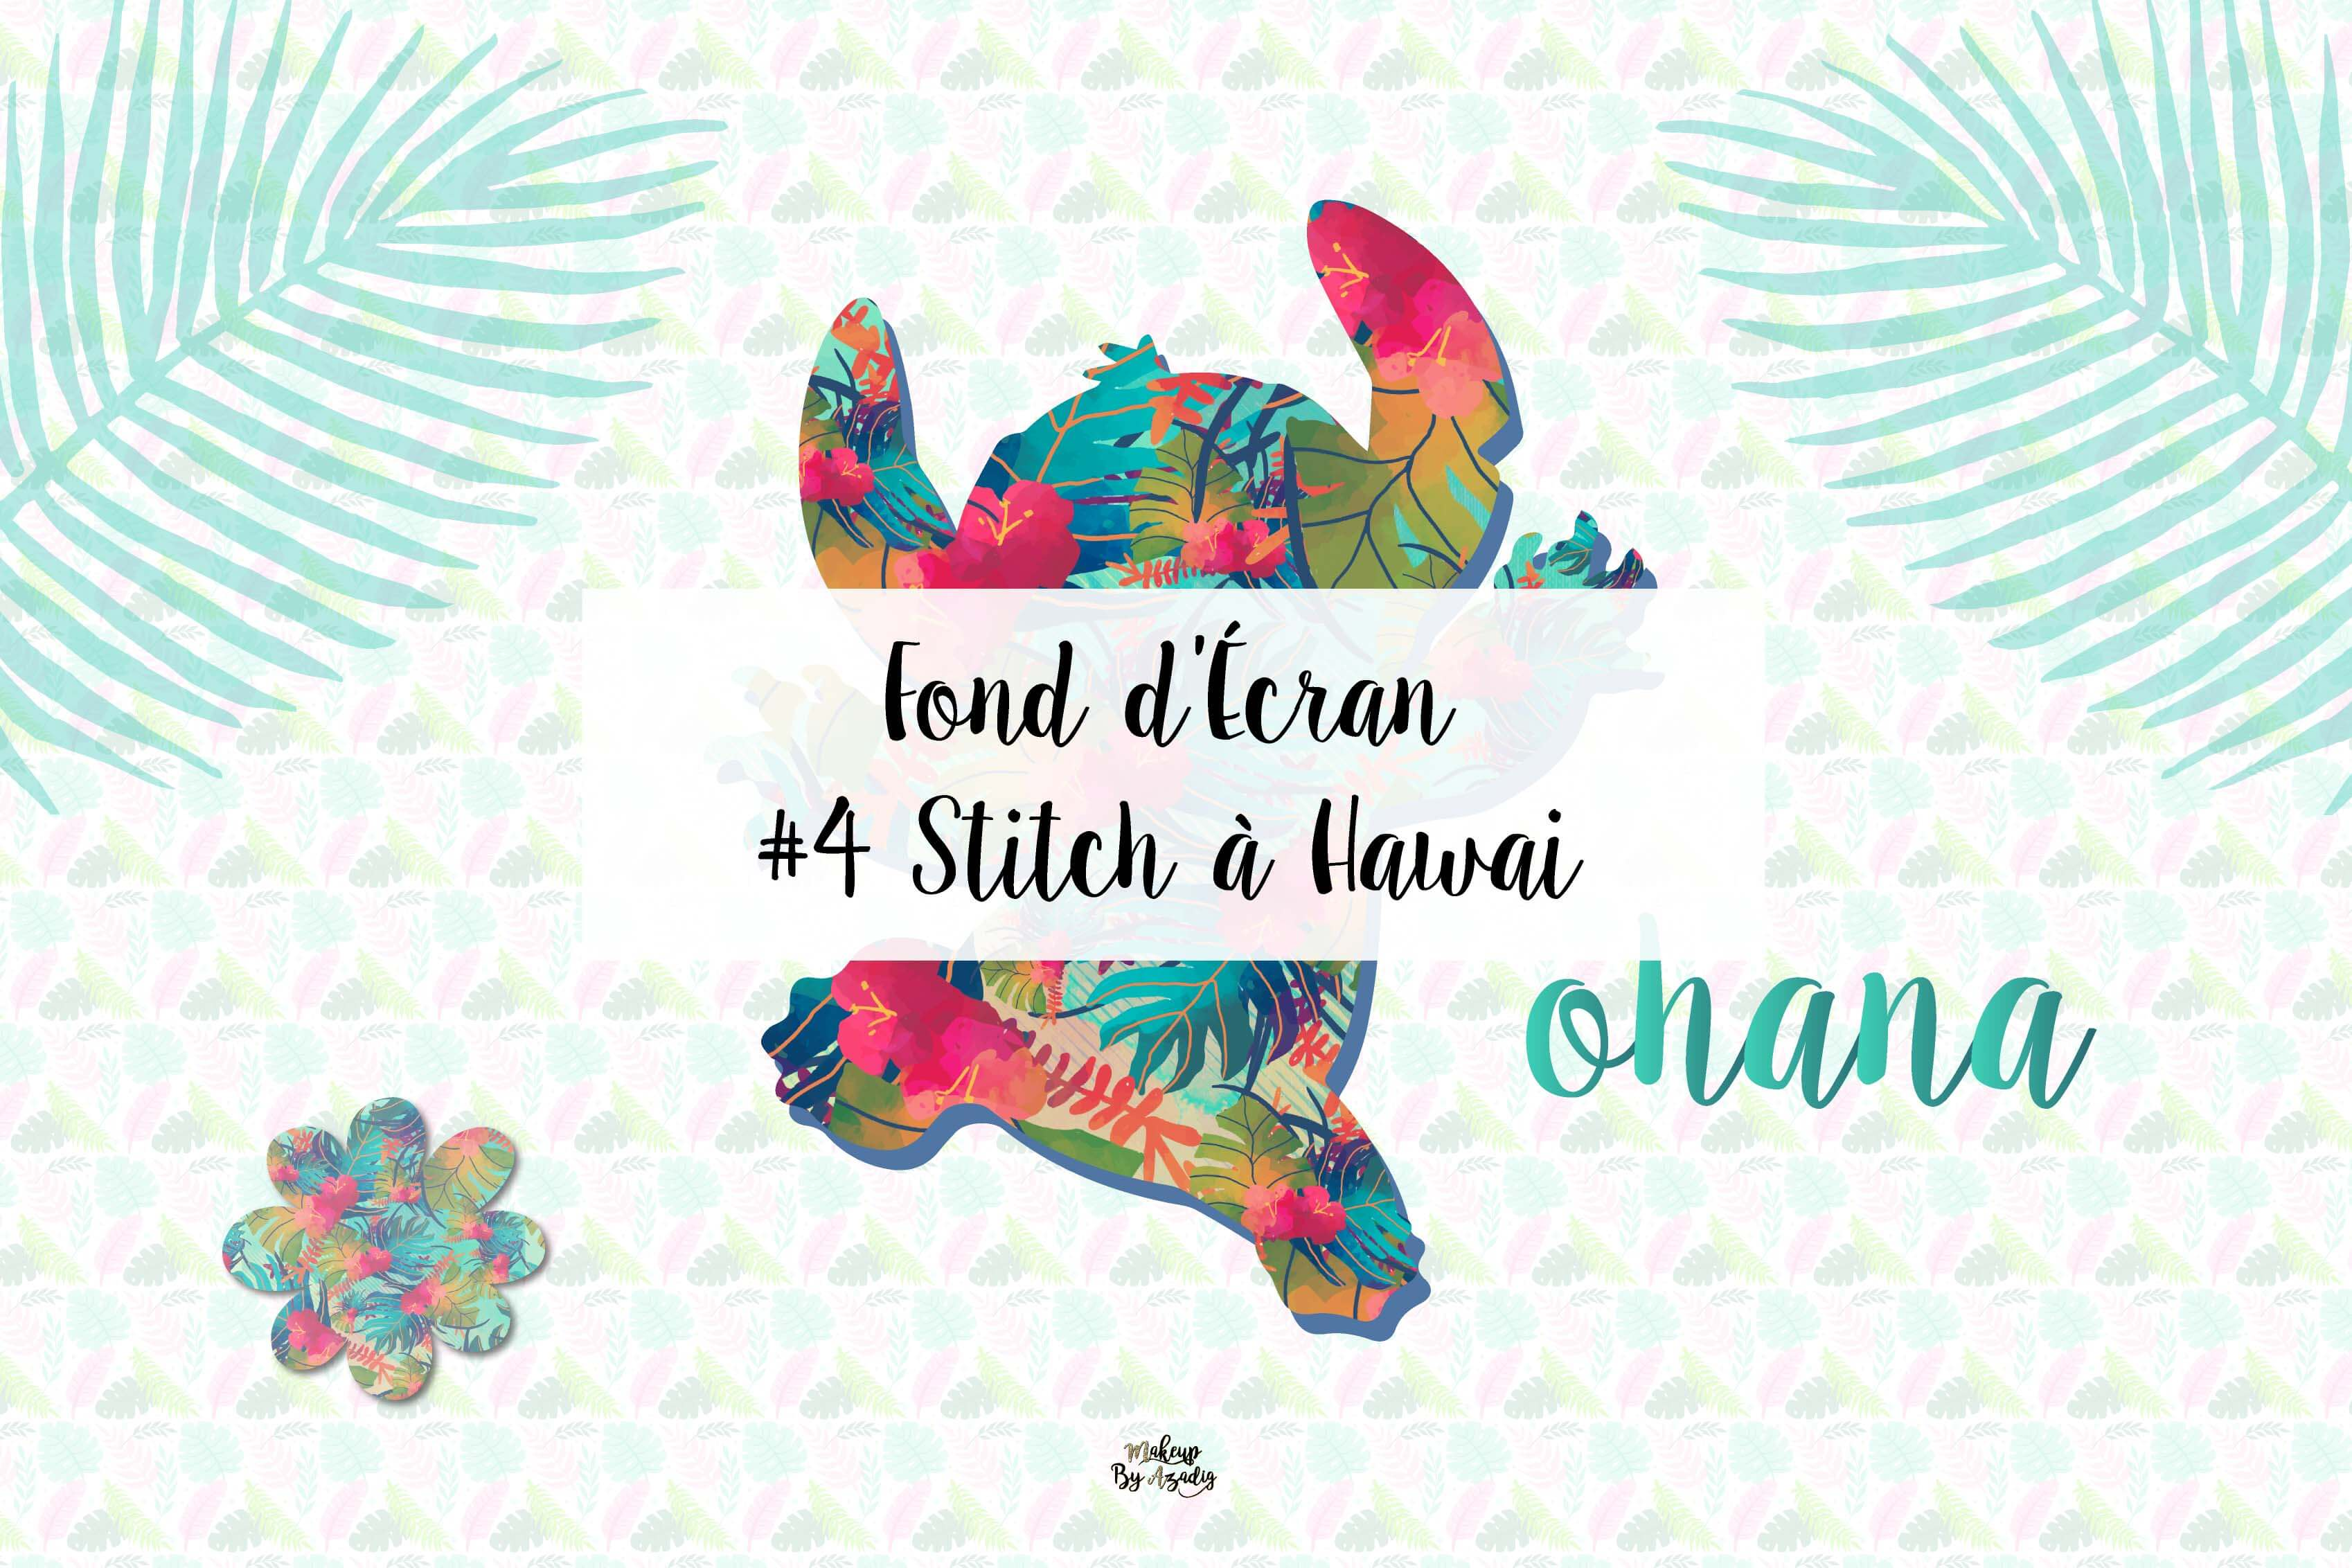 fond-decran-wallpaper-stitch-hawai-disney-ordinateur-iphone-samsung-mac-macbook-imac-pc-makeupbyazadig-tendance